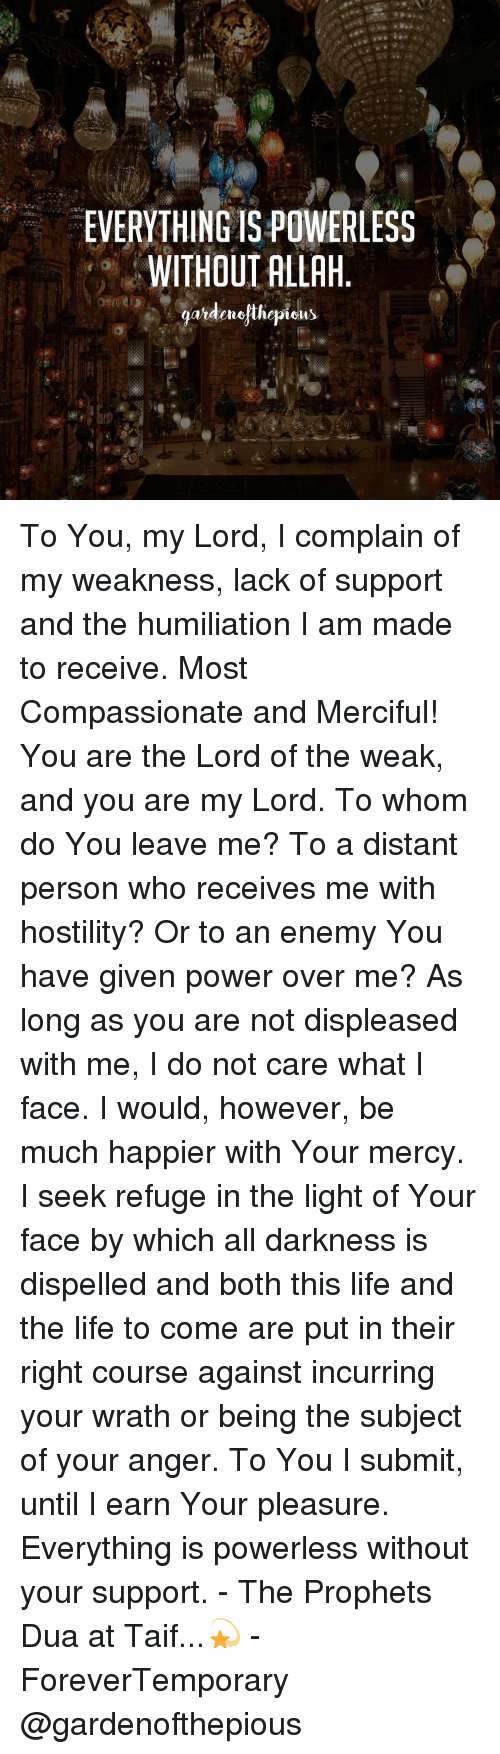 Memes, Enemies, and Mercy: EVERYTHING IS POWERLESS  WITHOUT ALLAH  ardengthepions To You, my Lord, I complain of my weakness, lack of support and the humiliation I am made to receive. Most Compassionate and Merciful! You are the Lord of the weak, and you are my Lord. To whom do You leave me? To a distant person who receives me with hostility? Or to an enemy You have given power over me? As long as you are not displeased with me, I do not care what I face. I would, however, be much happier with Your mercy. I seek refuge in the light of Your face by which all darkness is dispelled and both this life and the life to come are put in their right course against incurring your wrath or being the subject of your anger. To You I submit, until I earn Your pleasure. Everything is powerless without your support. - The Prophets ‎ﷺ‎ Dua at Taif...💫 - ForeverTemporary @gardenofthepious